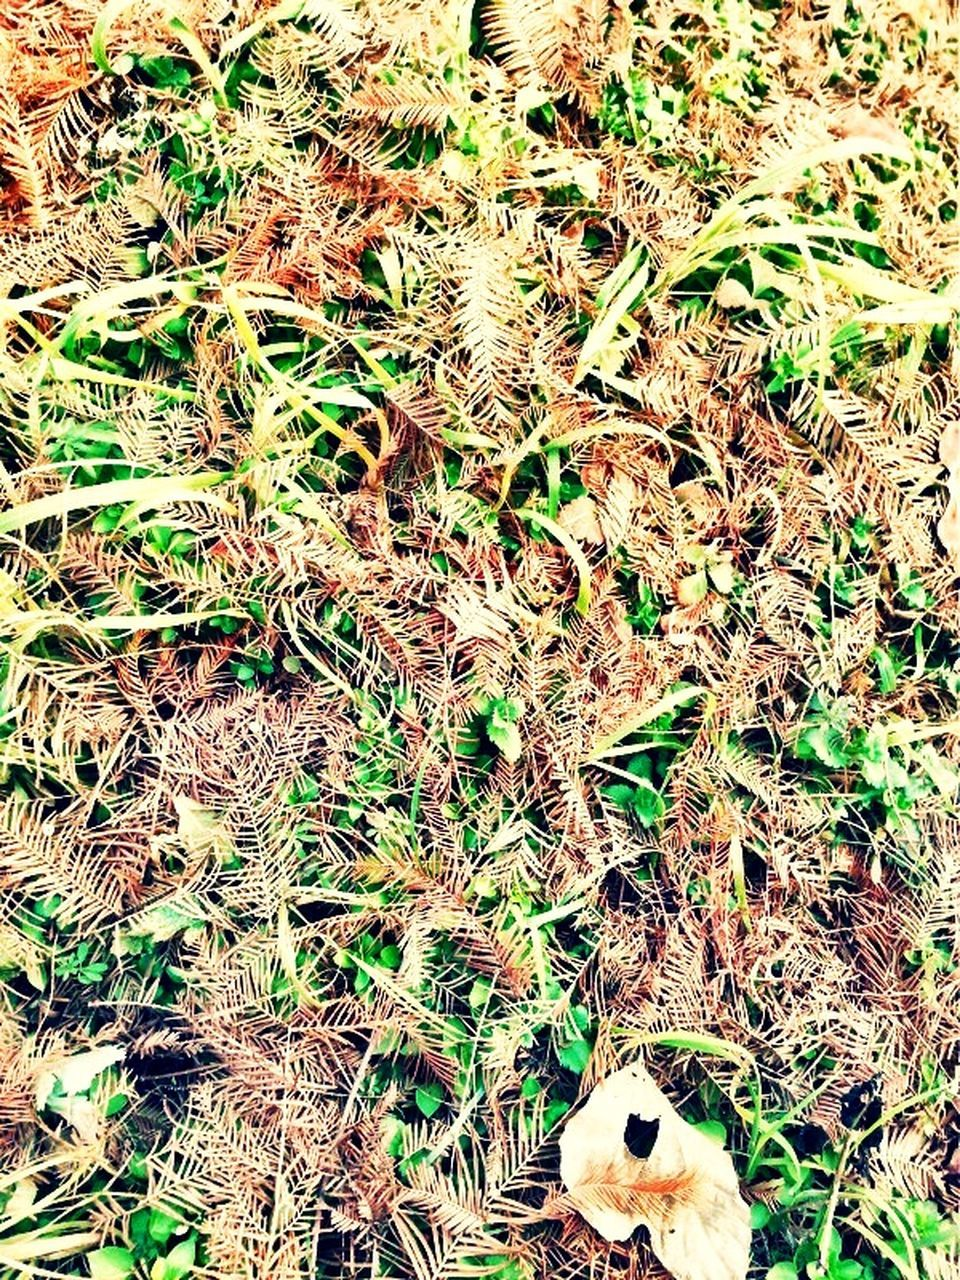 field, high angle view, leaf, day, grass, no people, full frame, nature, outdoors, close-up